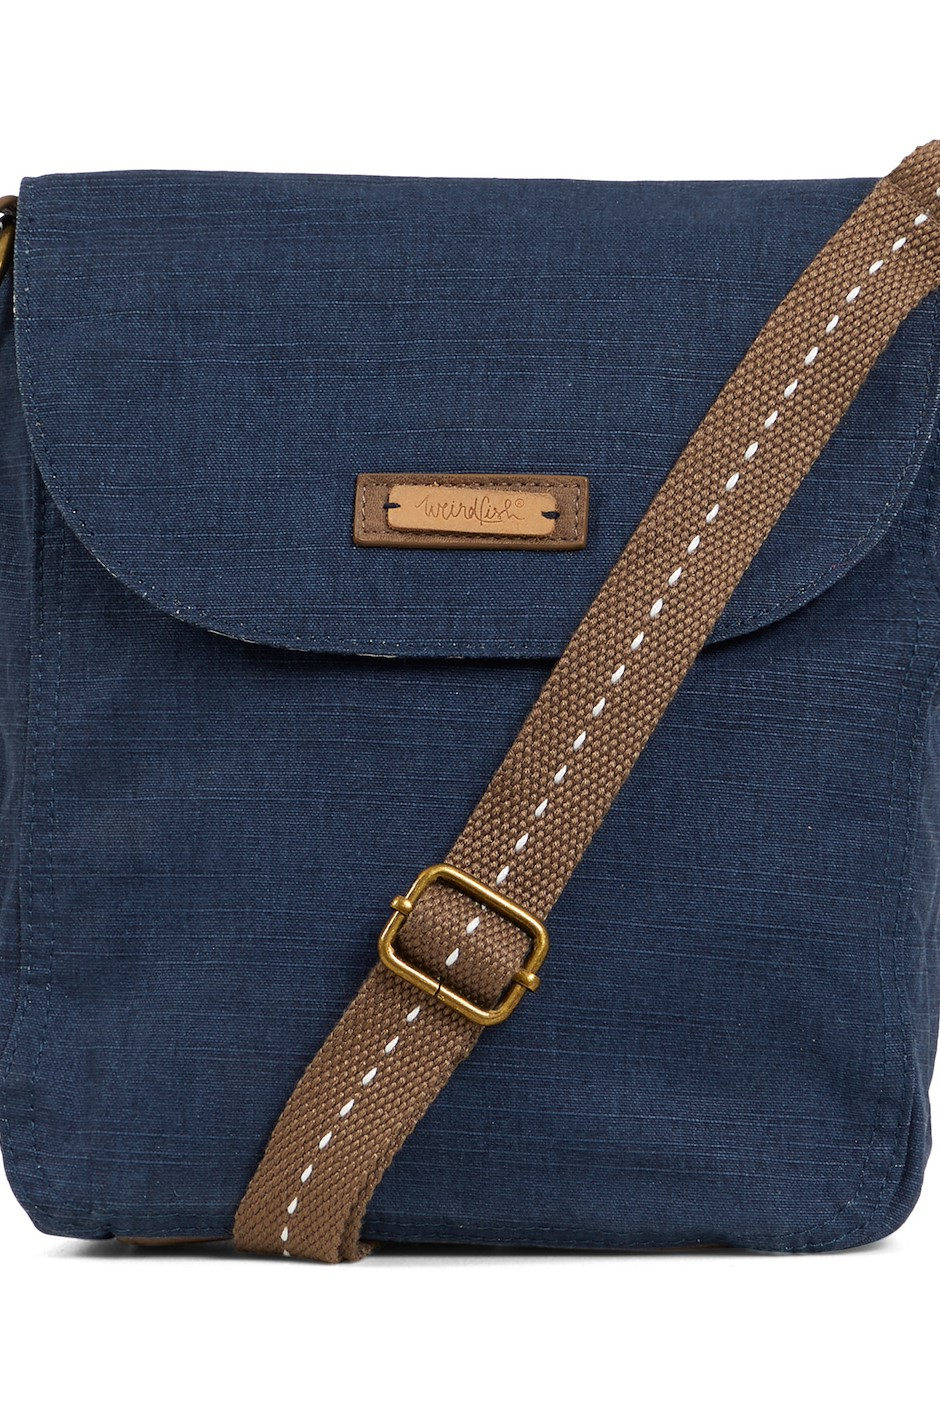 Loula Plain Cross Body Bag Navy